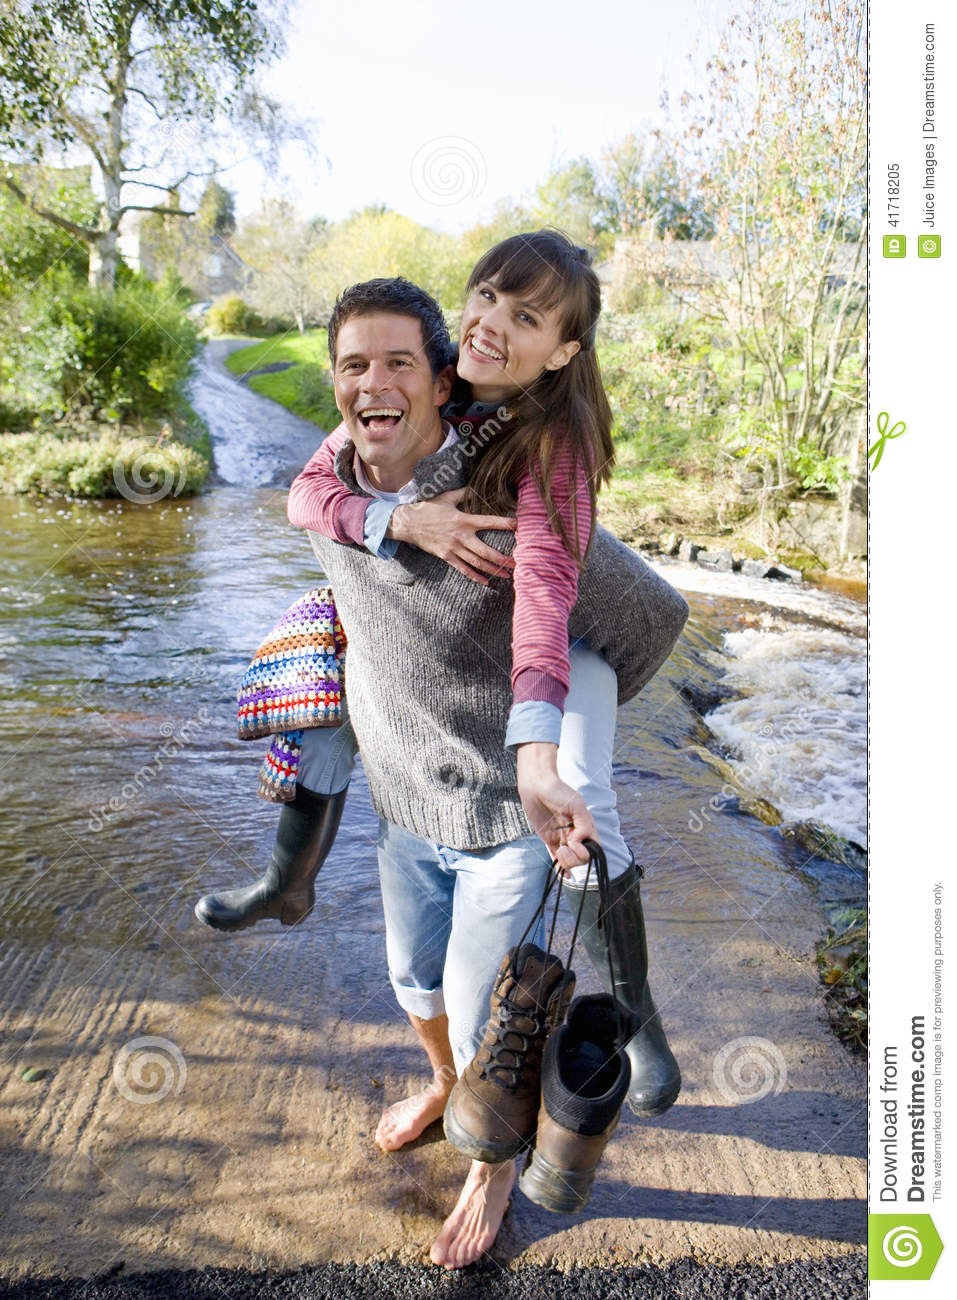 Laughing husband carrying wife through shallow stream